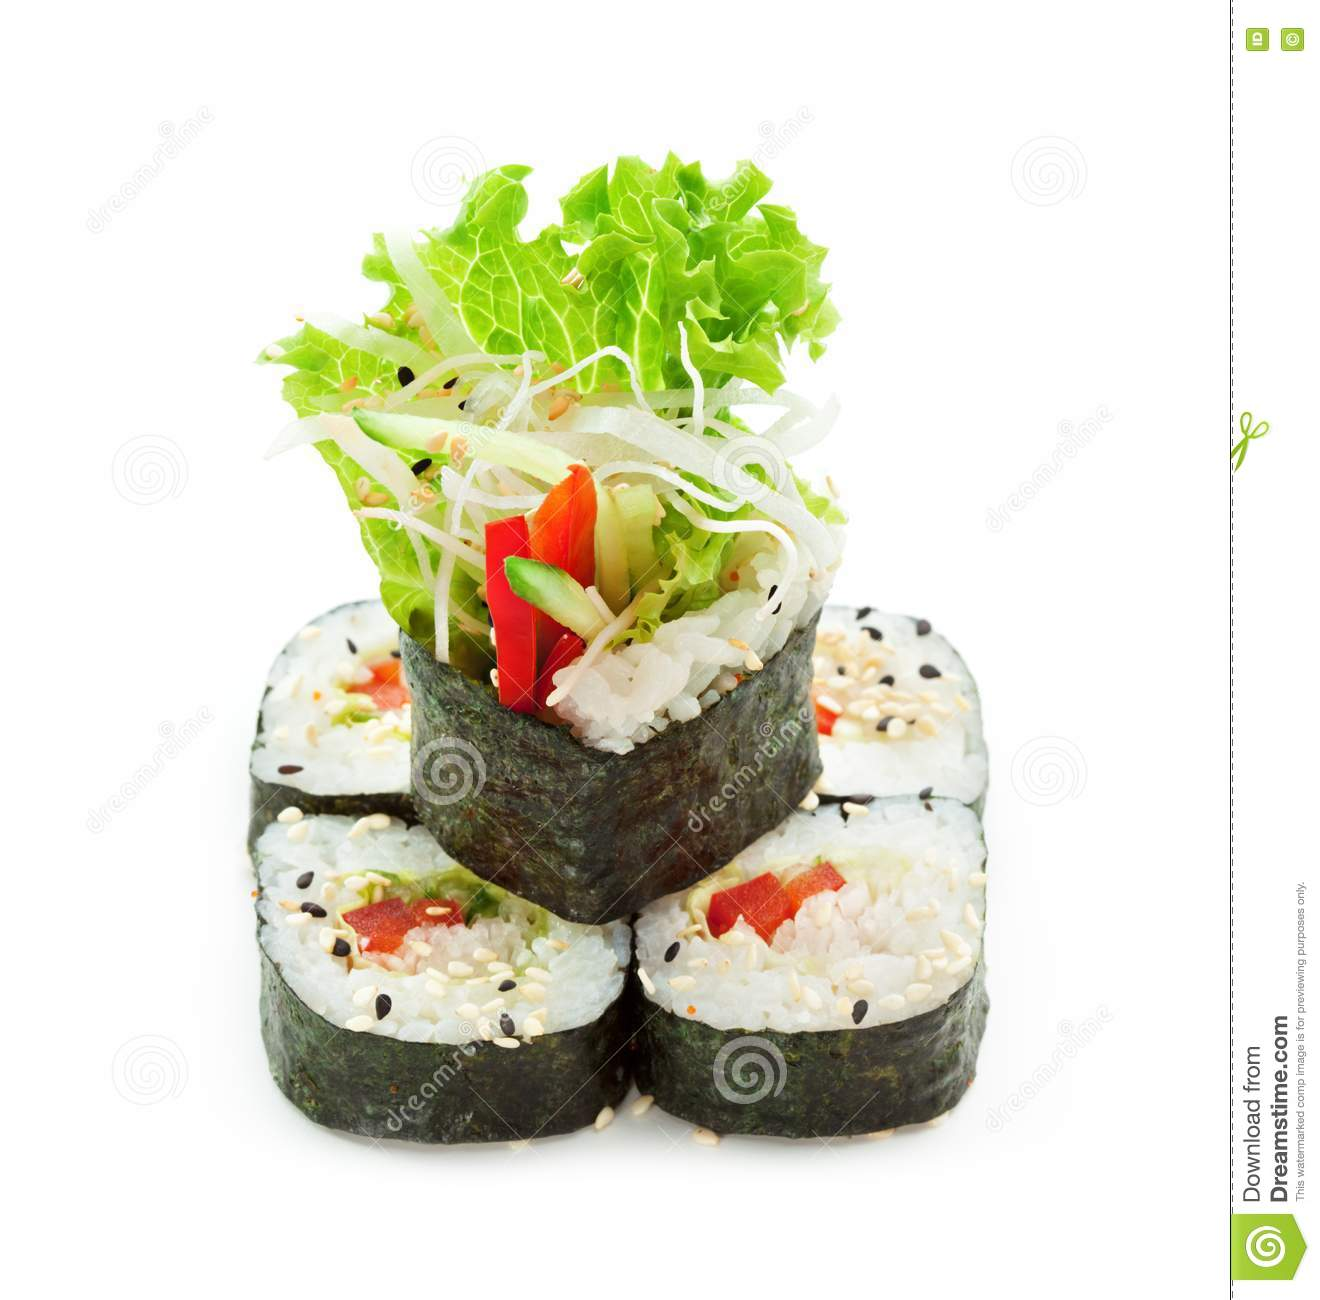 ... roll made of cucumber bell pepper salad leaf and daikon white radish